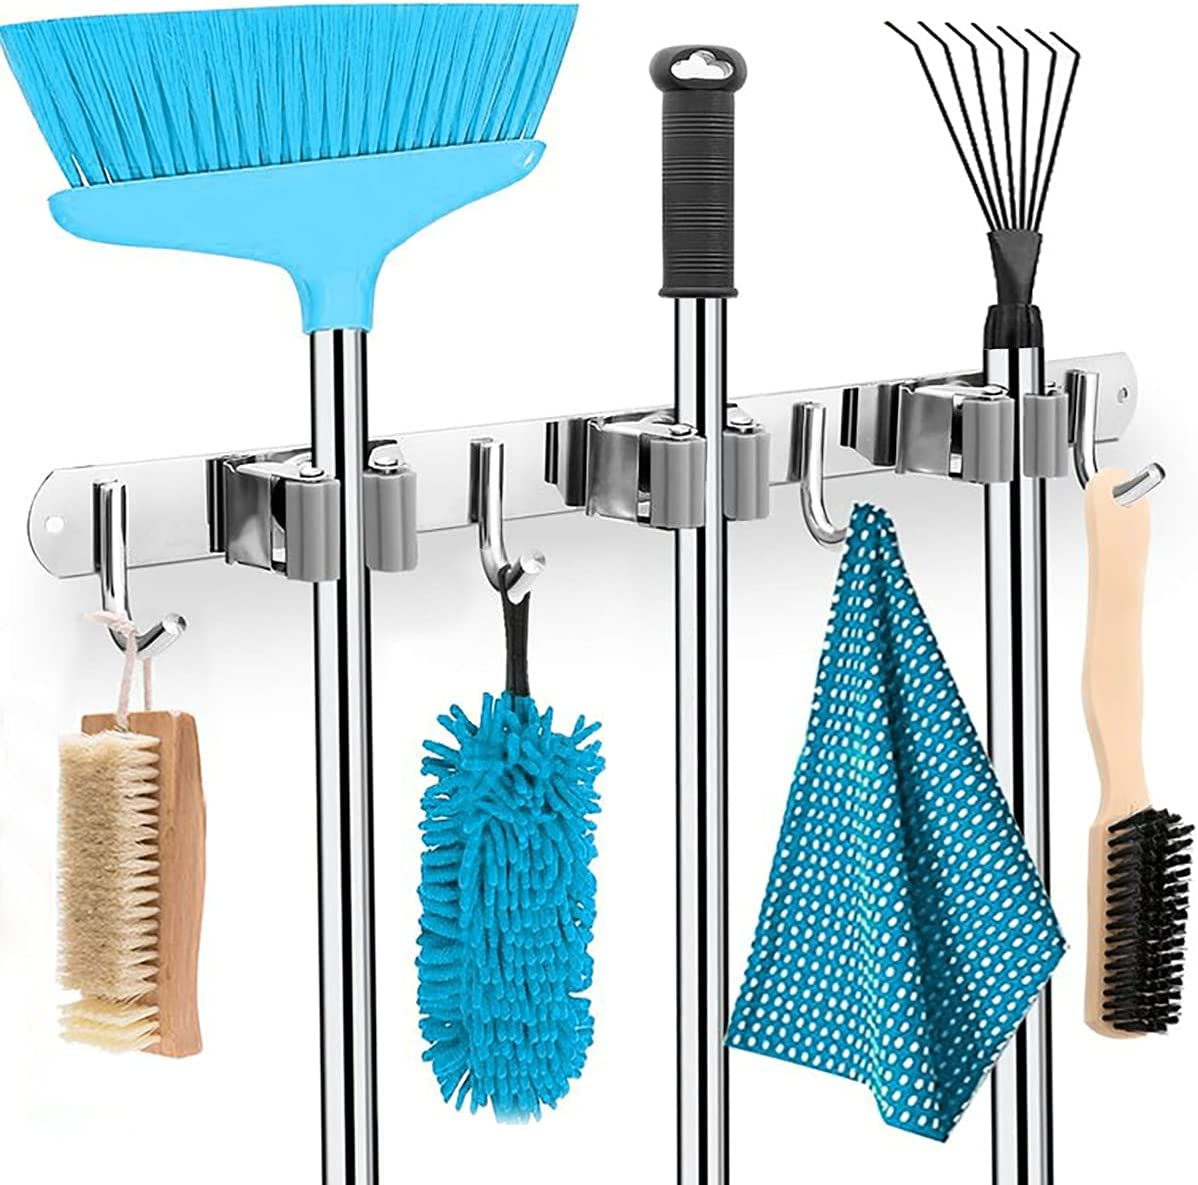 Mop and Broom Holder Wall Mount SUS 304 Stainless Steel Storage and Organization Tool OrganizerWall Hanger with 3 Racks 4 Hooks for Laundry Room Garage Garden Closet (Sliver, 1 Pack)